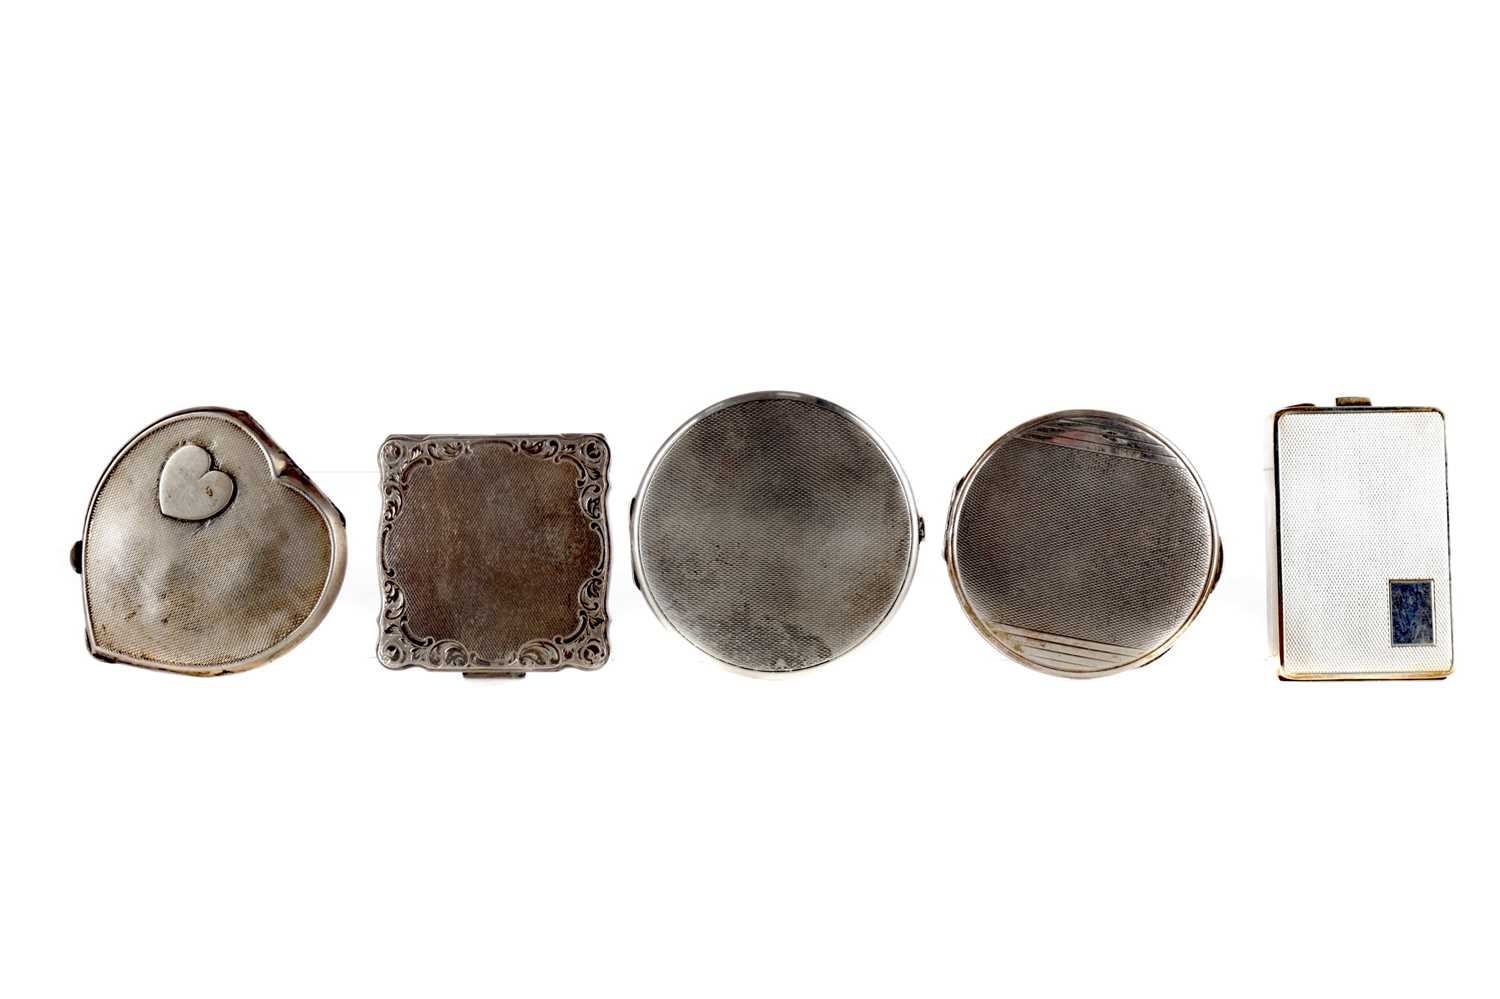 Lot 1710 - A SILVER HEART SHAPED COMPACT AND FOUR OTHER SILVER COMPACTS